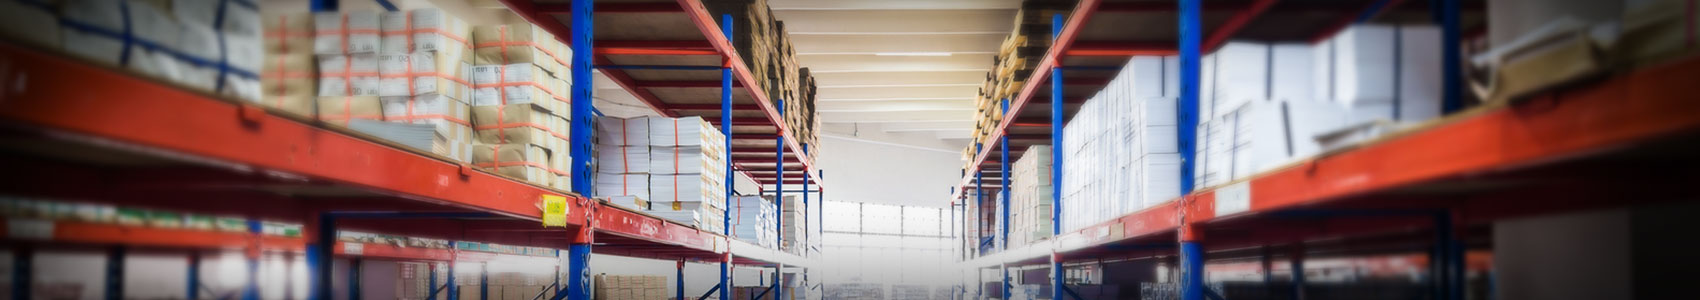 MWT Warehousing